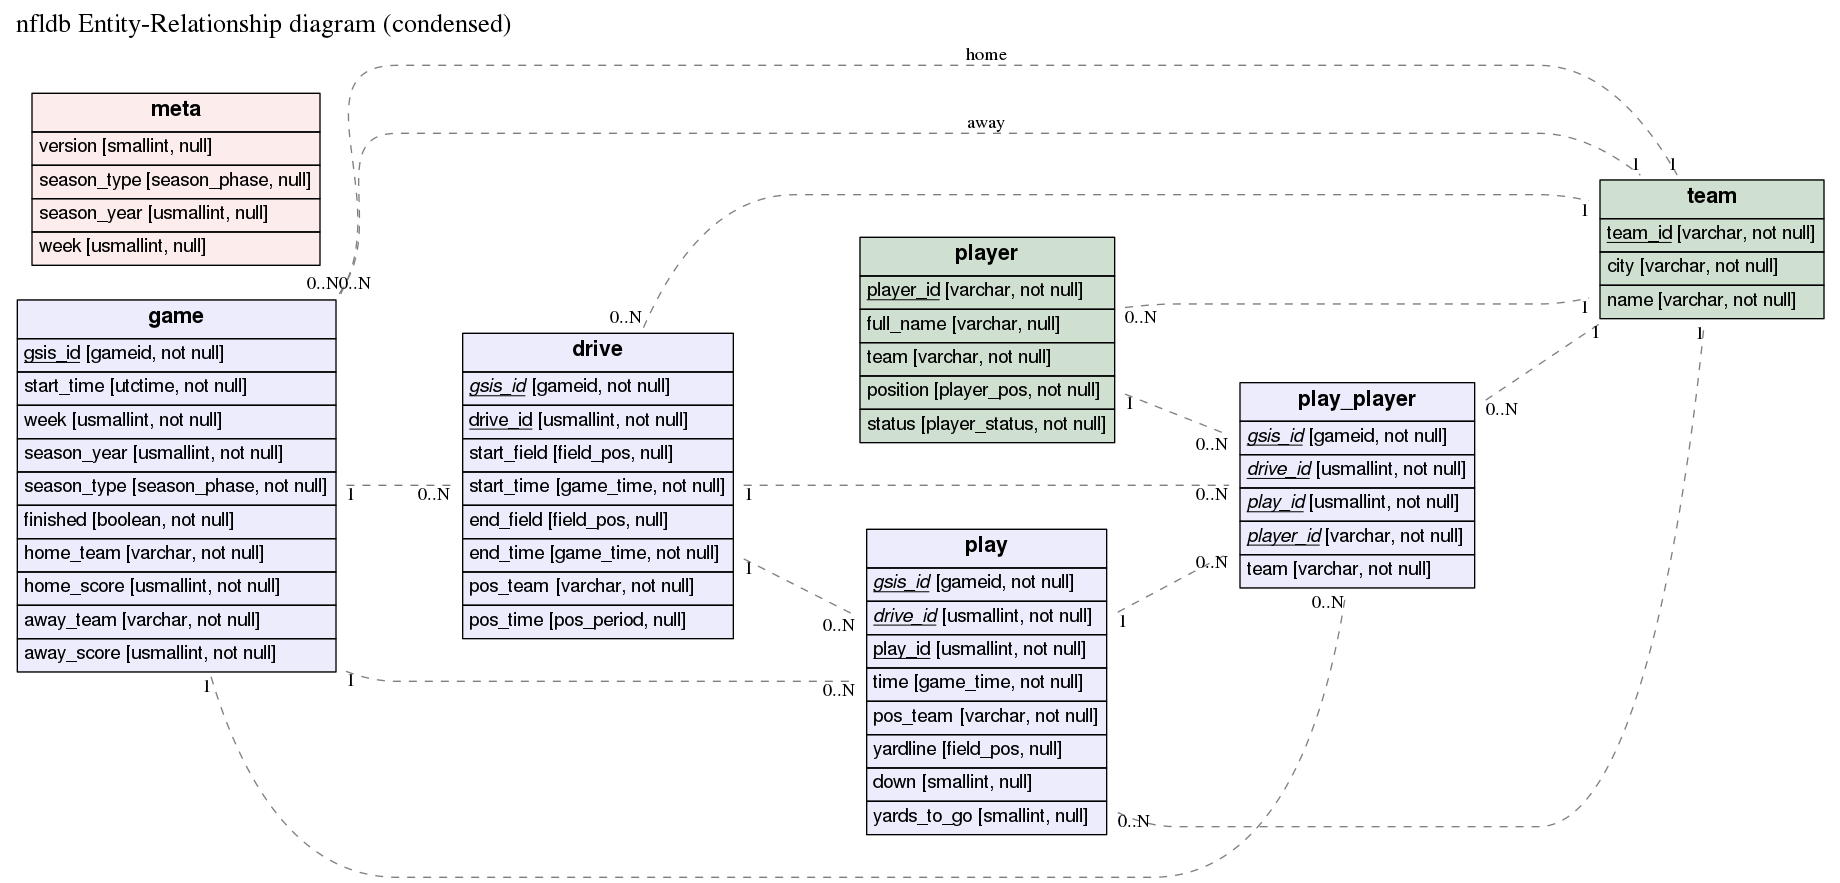 Github burntsushierd translates a plain text description of a er diagram for nfldb biocorpaavc